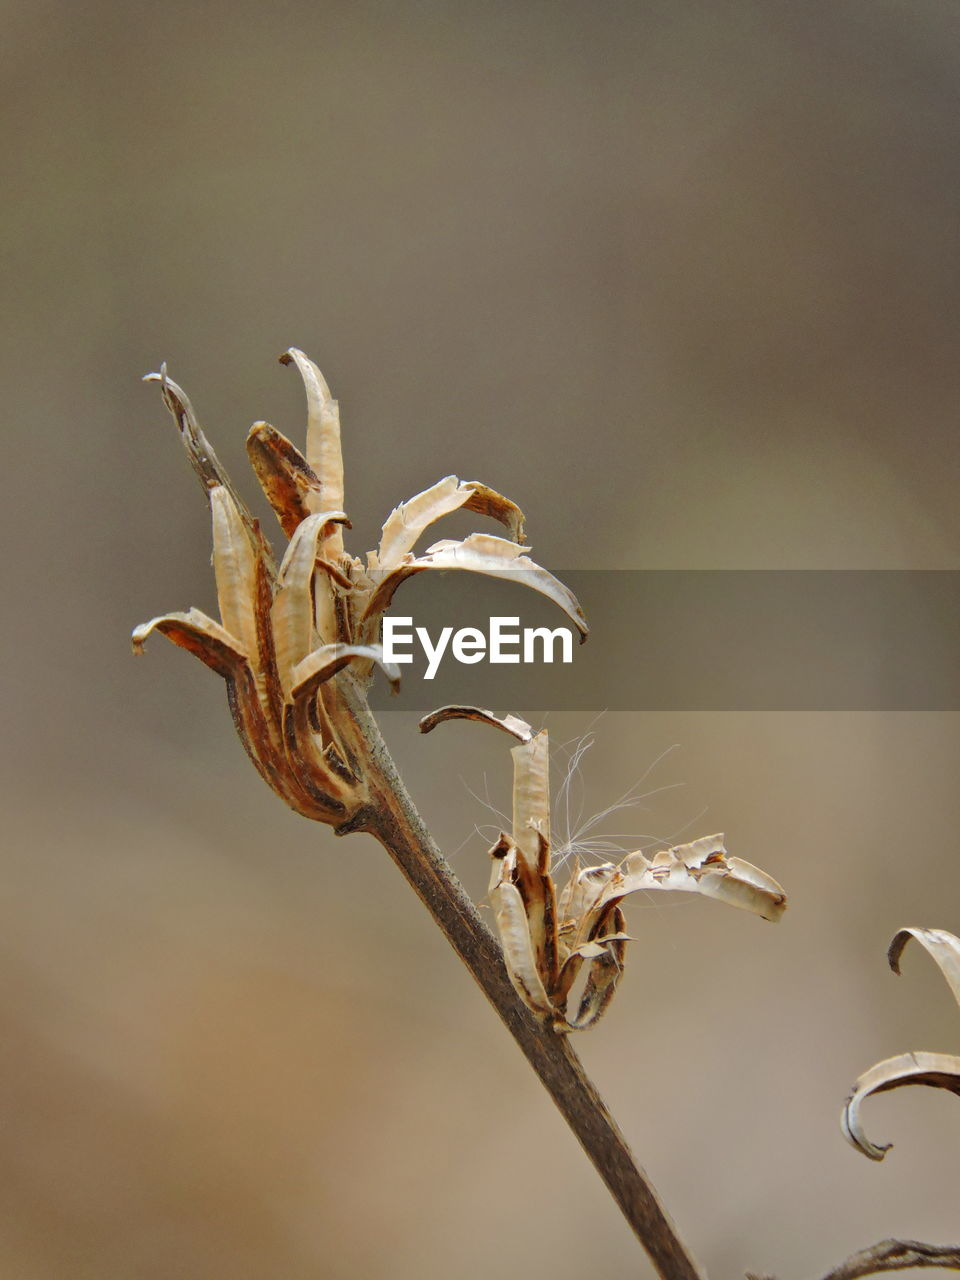 plant, no people, beauty in nature, close-up, nature, focus on foreground, growth, day, vulnerability, dry, fragility, outdoors, plant stem, tranquility, flower, brown, wilted plant, dried plant, botany, flowering plant, dead plant, dried